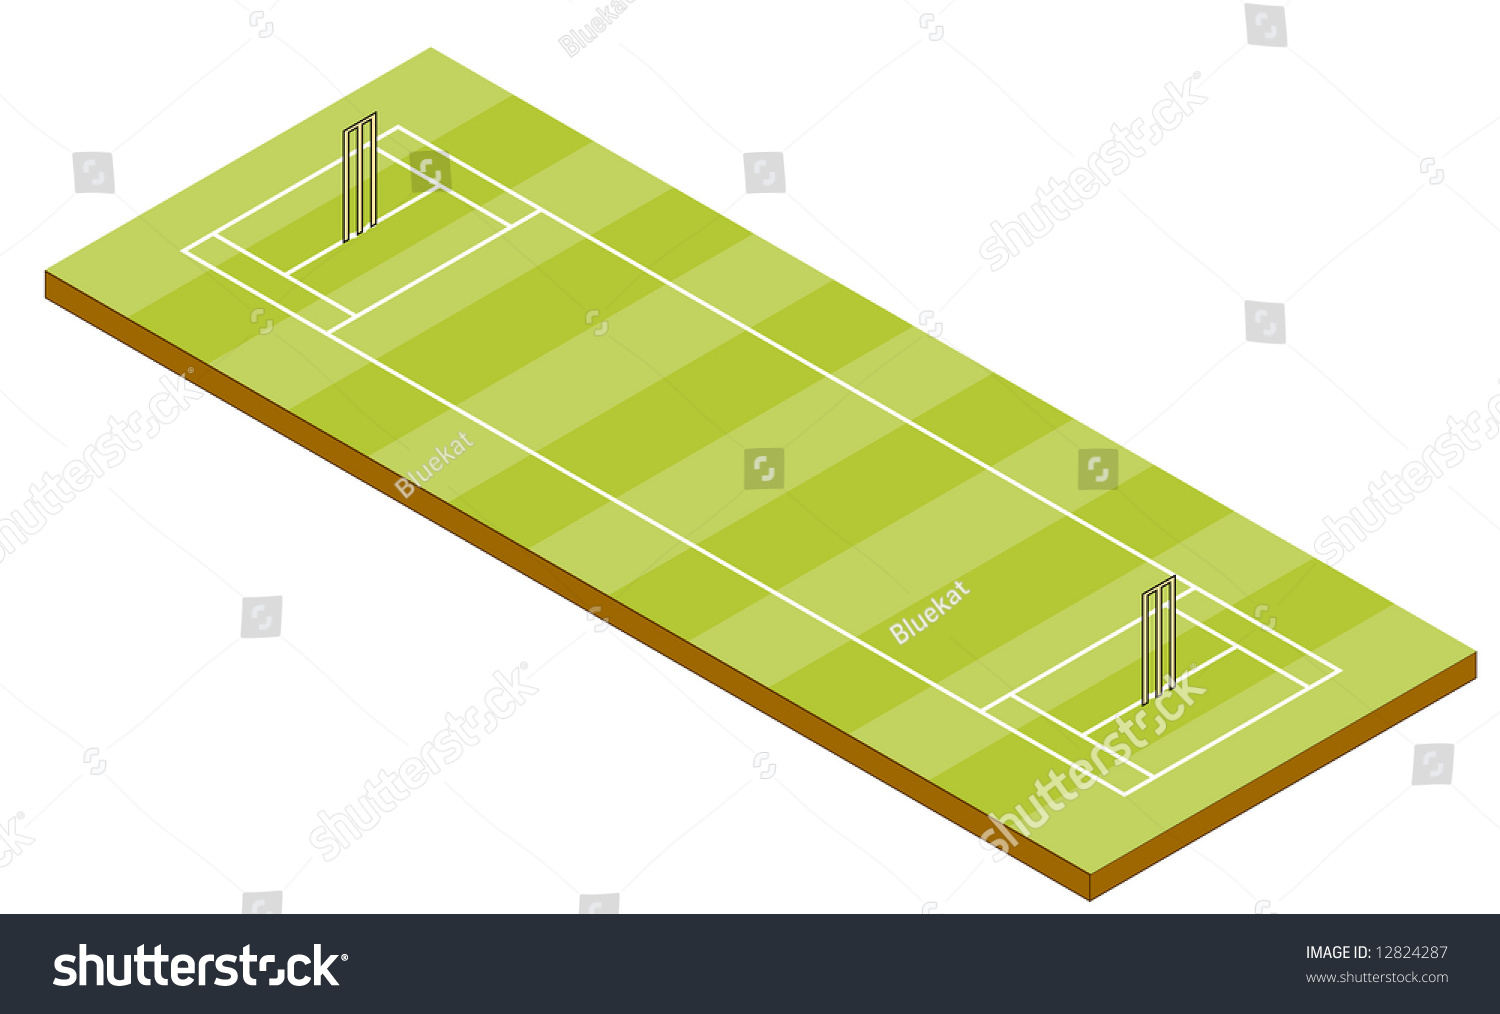 hight resolution of cricket pitch isometric view